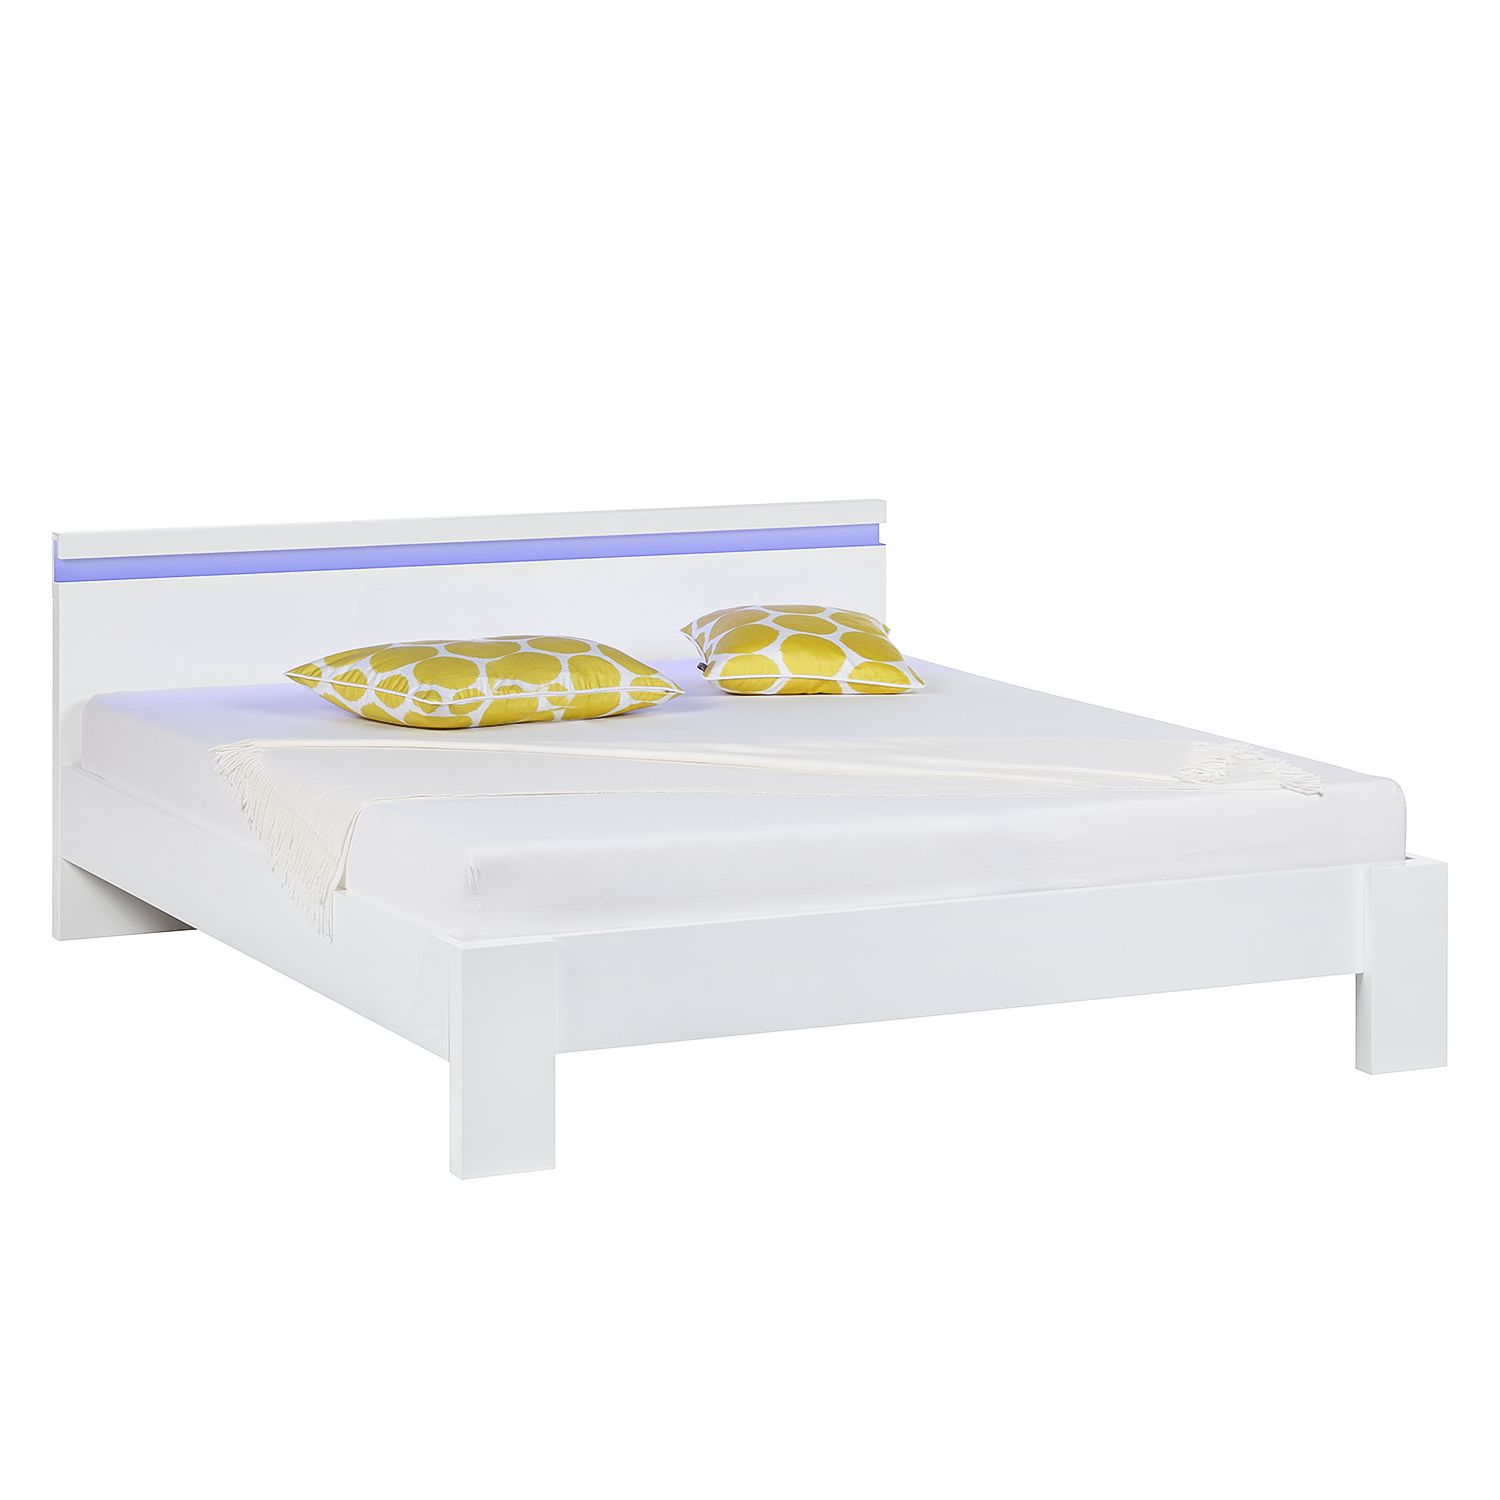 energie  A+, Bed Emblaze II - mat wit - LED-verlichting - 180 x 200cm, Fredriks